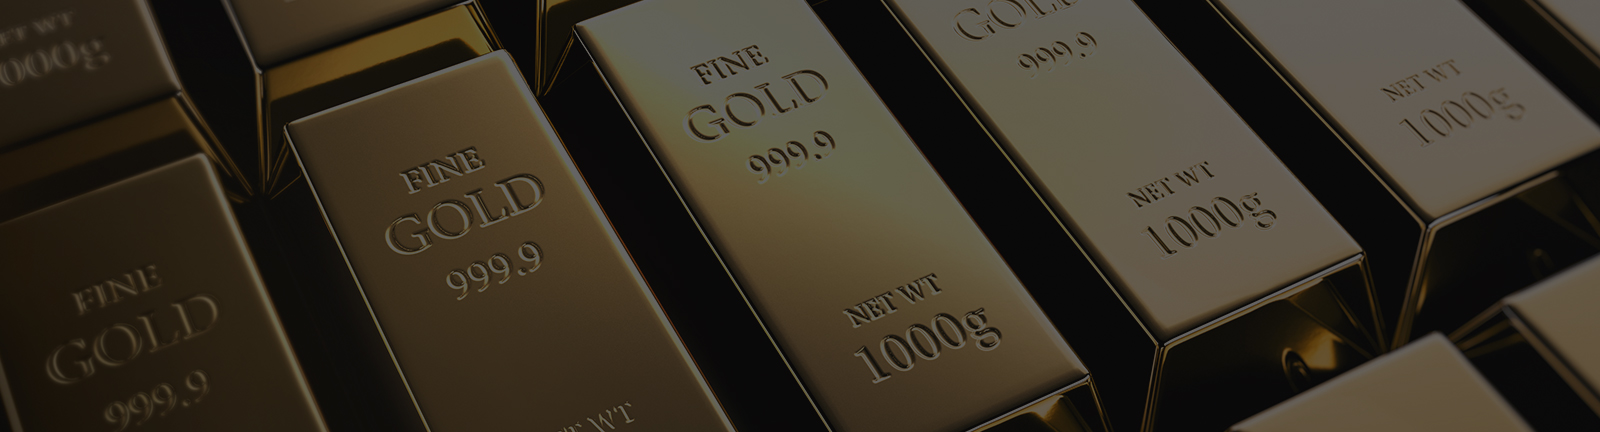 Blog - What lies ahead for gold